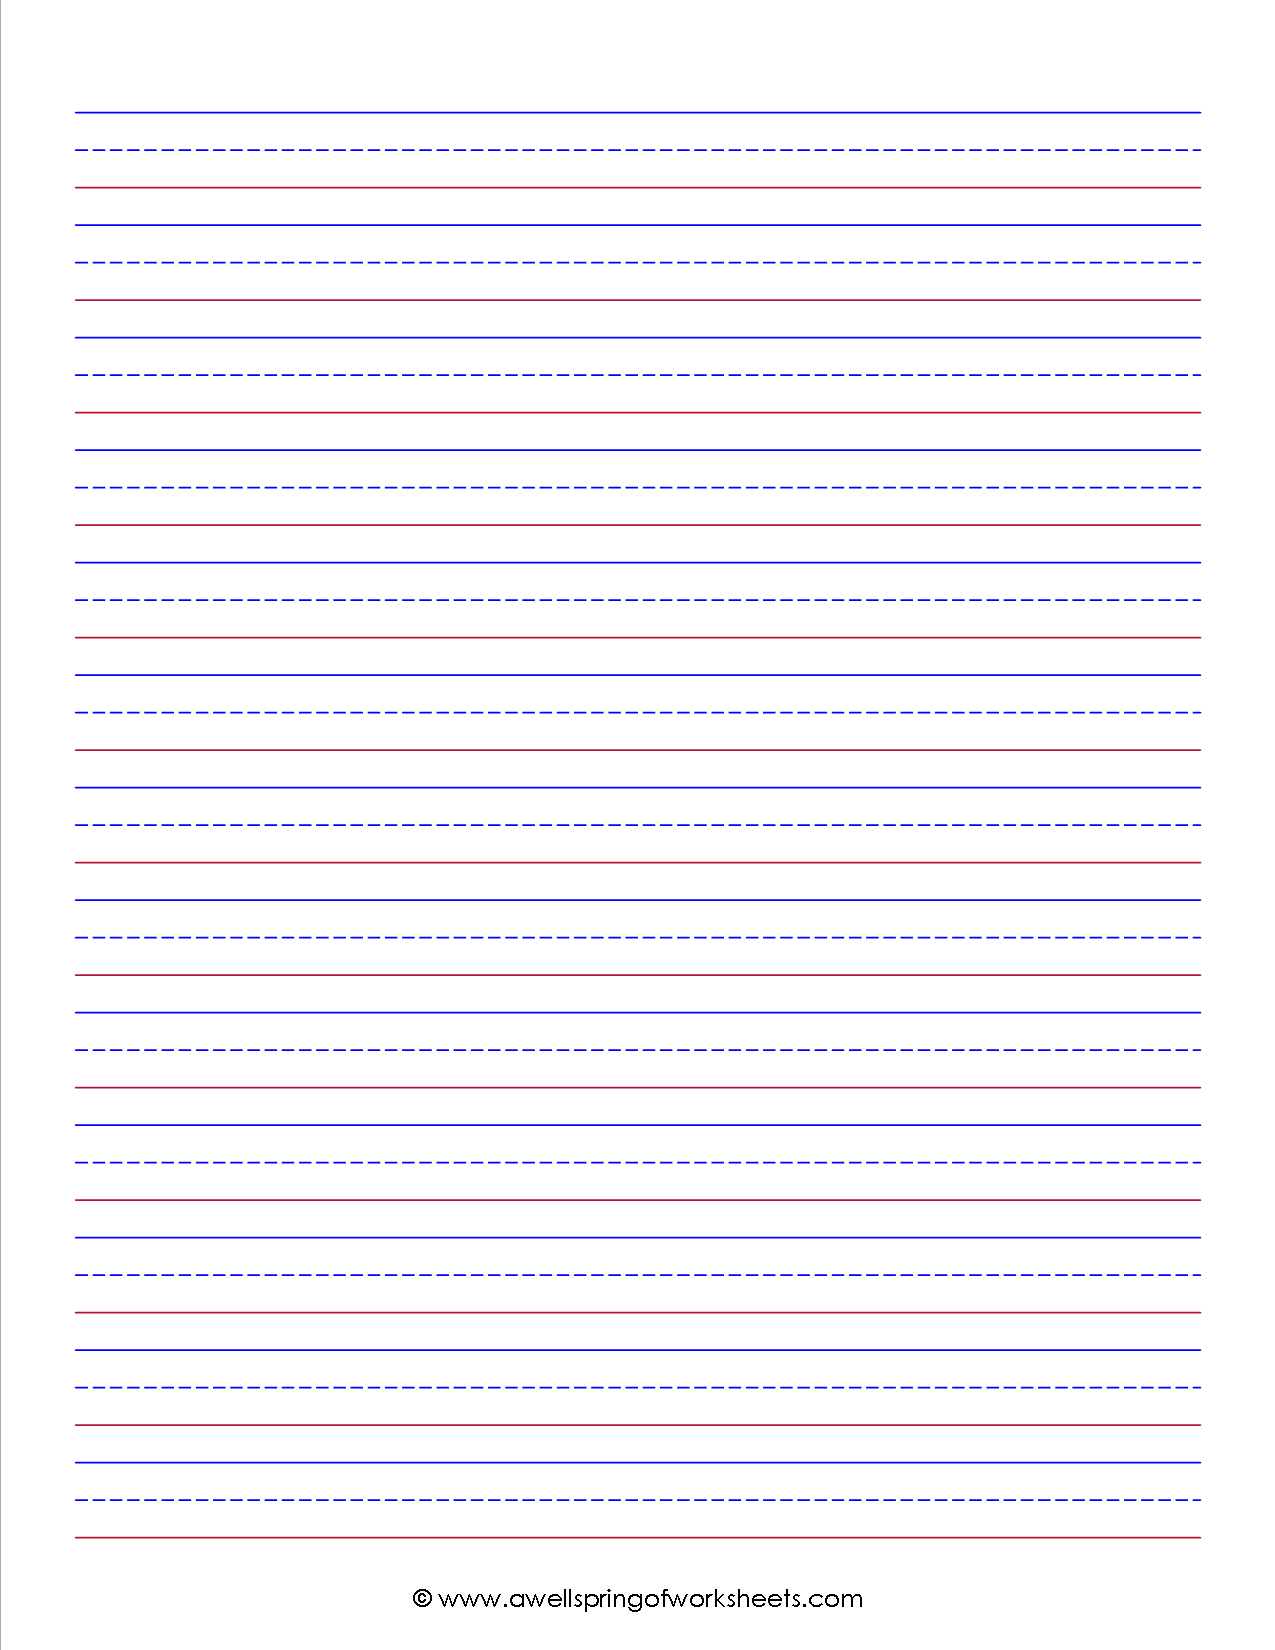 Worksheetssubject | A Wellspring Of Worksheets | Lined for Name Tracing Practice With Red And Blue Lines